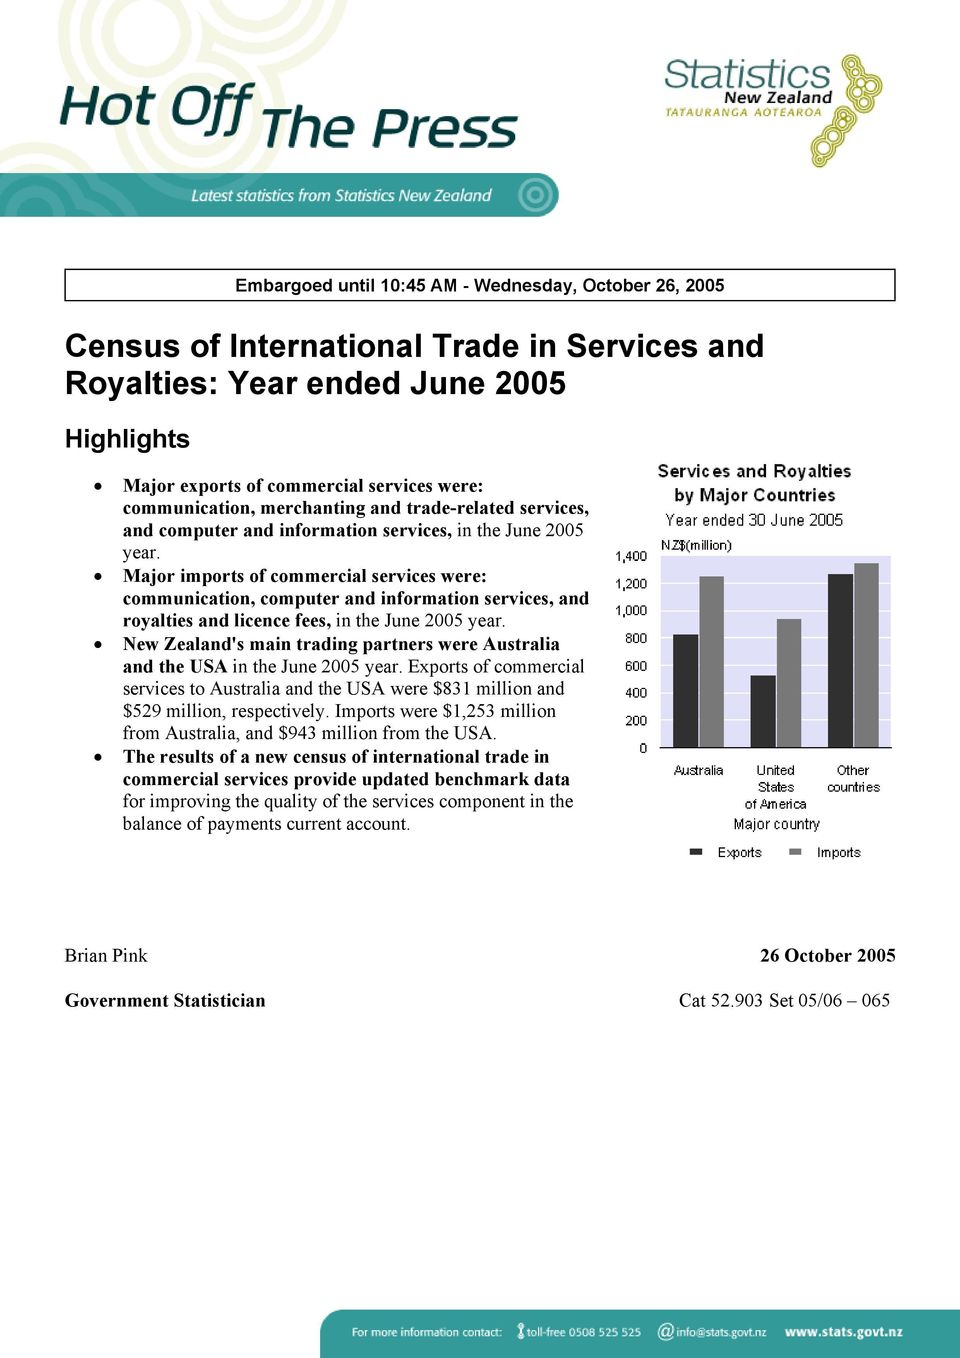 Major imports of commercial services were: communication, computer and information services, and royalties and licence fees, in the June 2005 year.